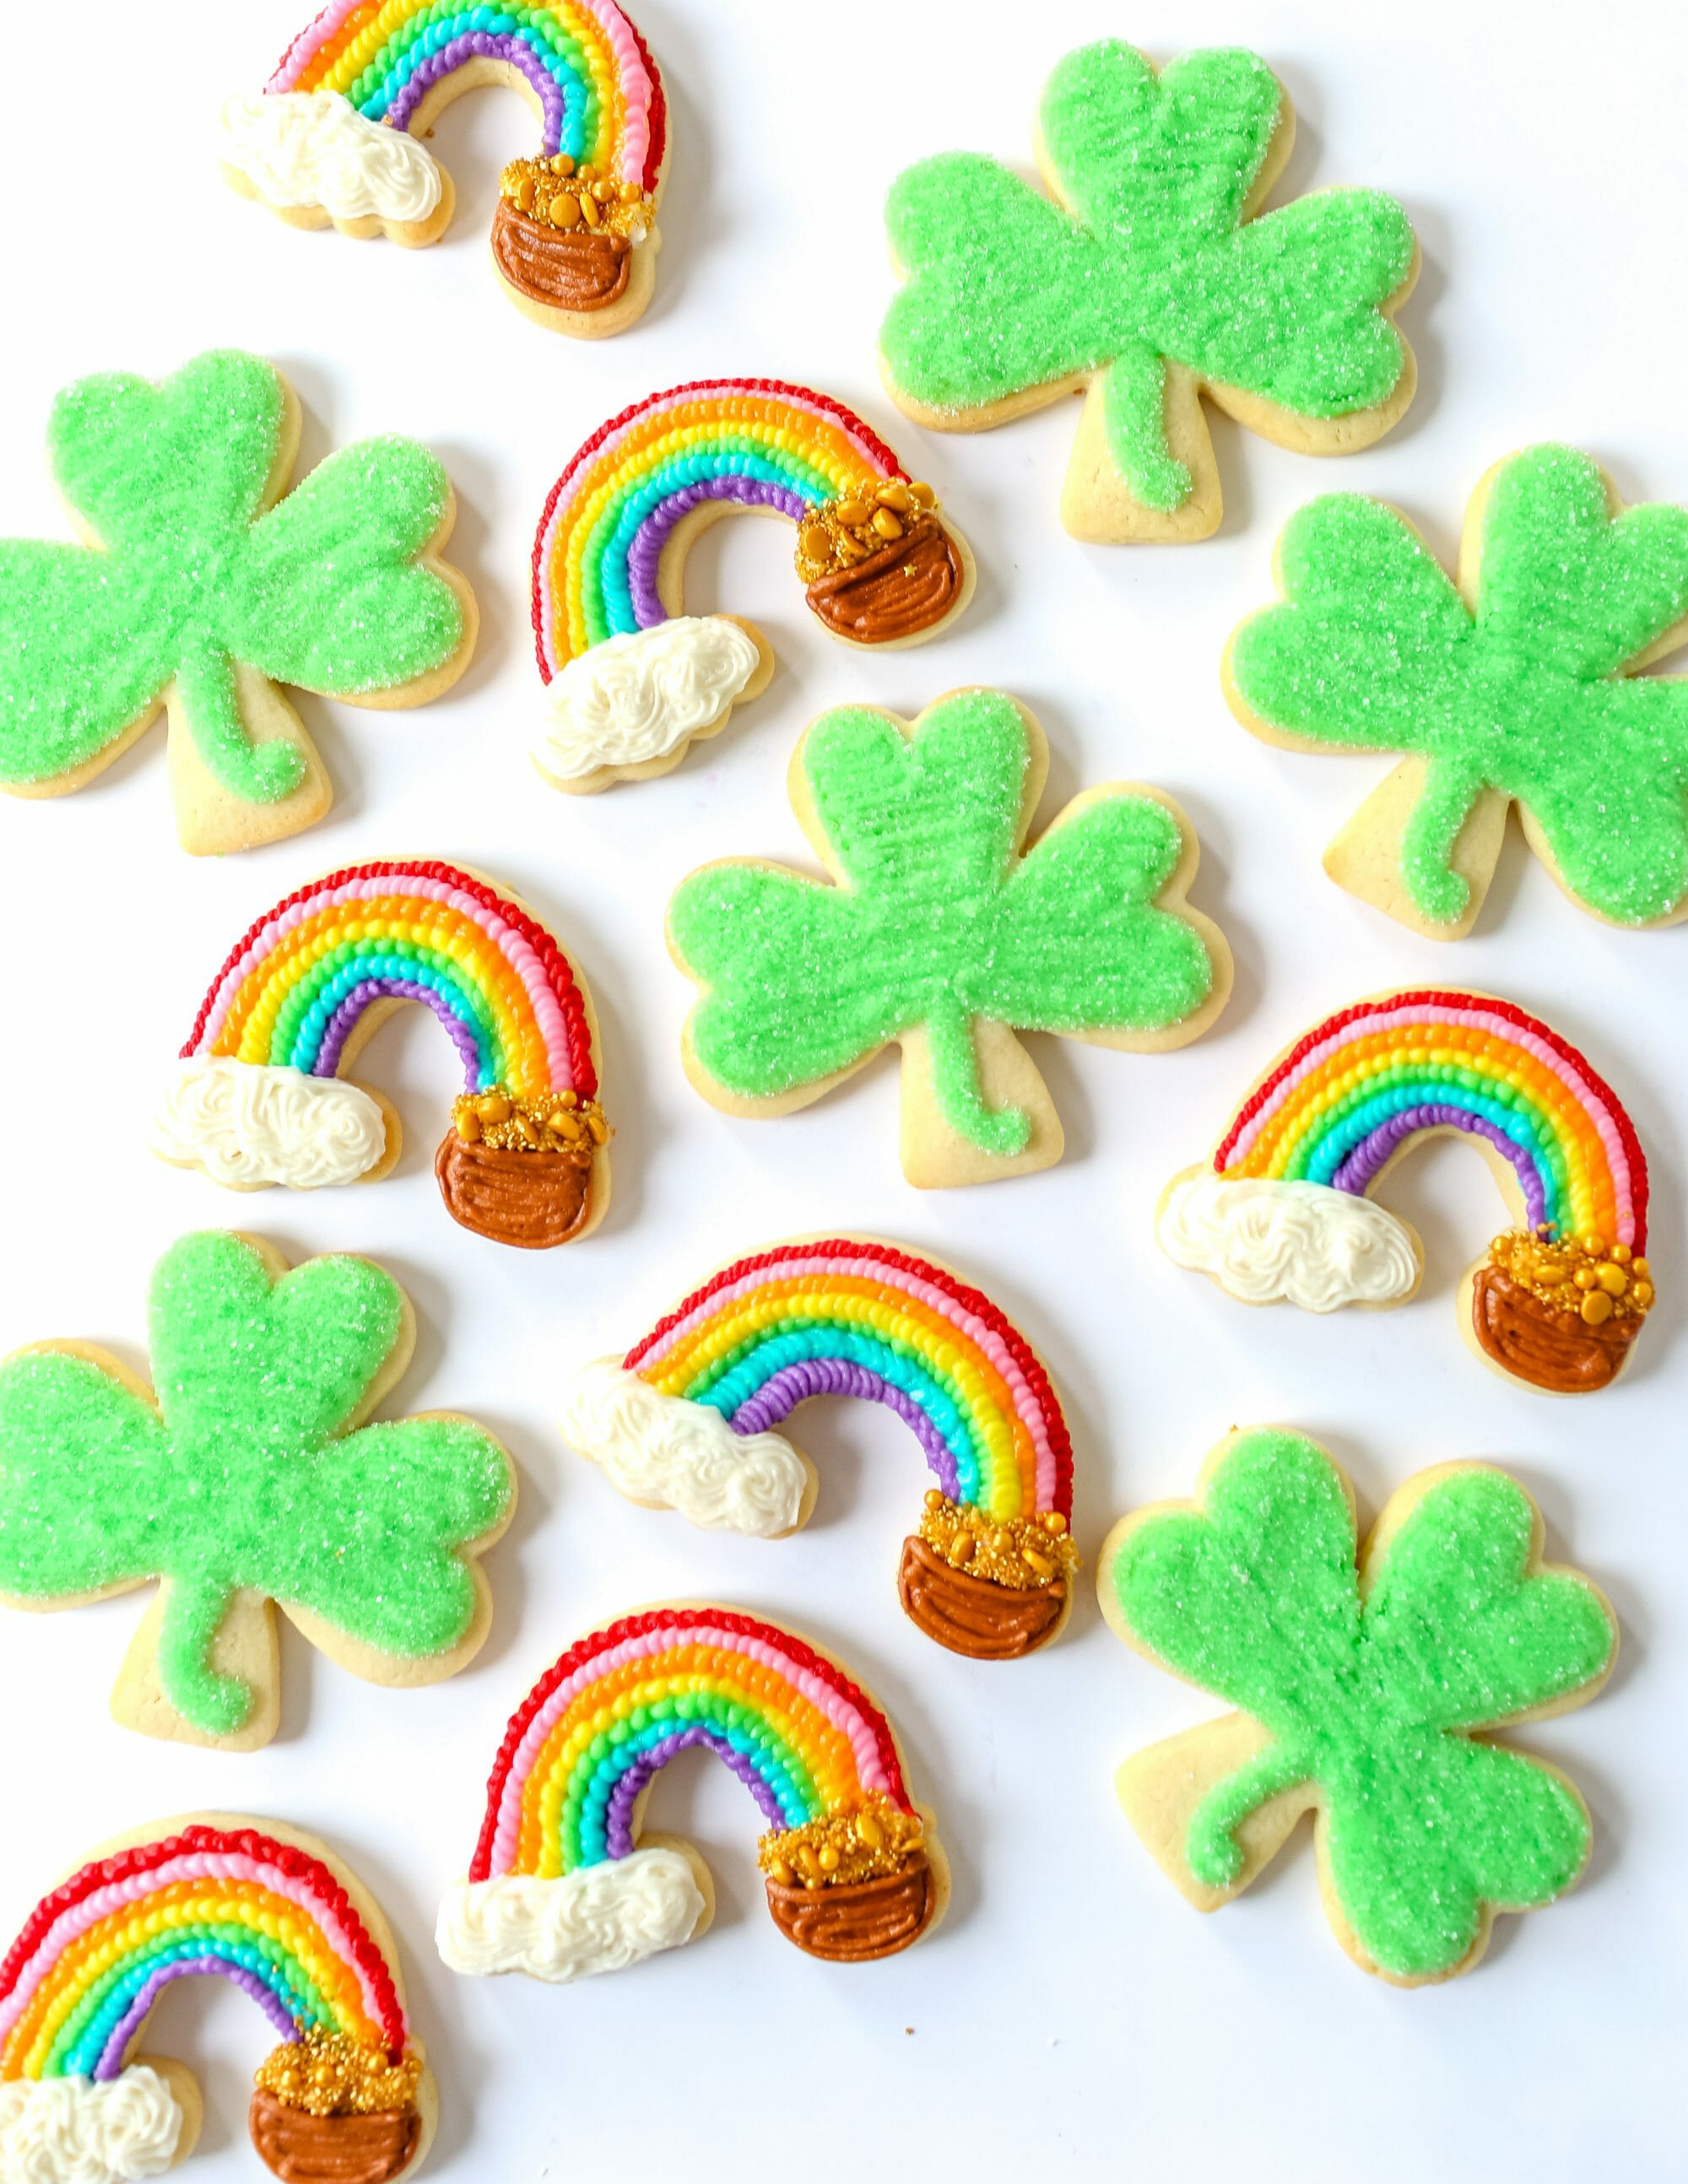 St Patrick's Day Sugar Cookies | st. Patrick's day dessert recipes | st. Patrick's day treats | homemade cookie recipes | st. Patrick's day food || JennyCookies.com #stpatricksday #cookierecipe #sugarcookies